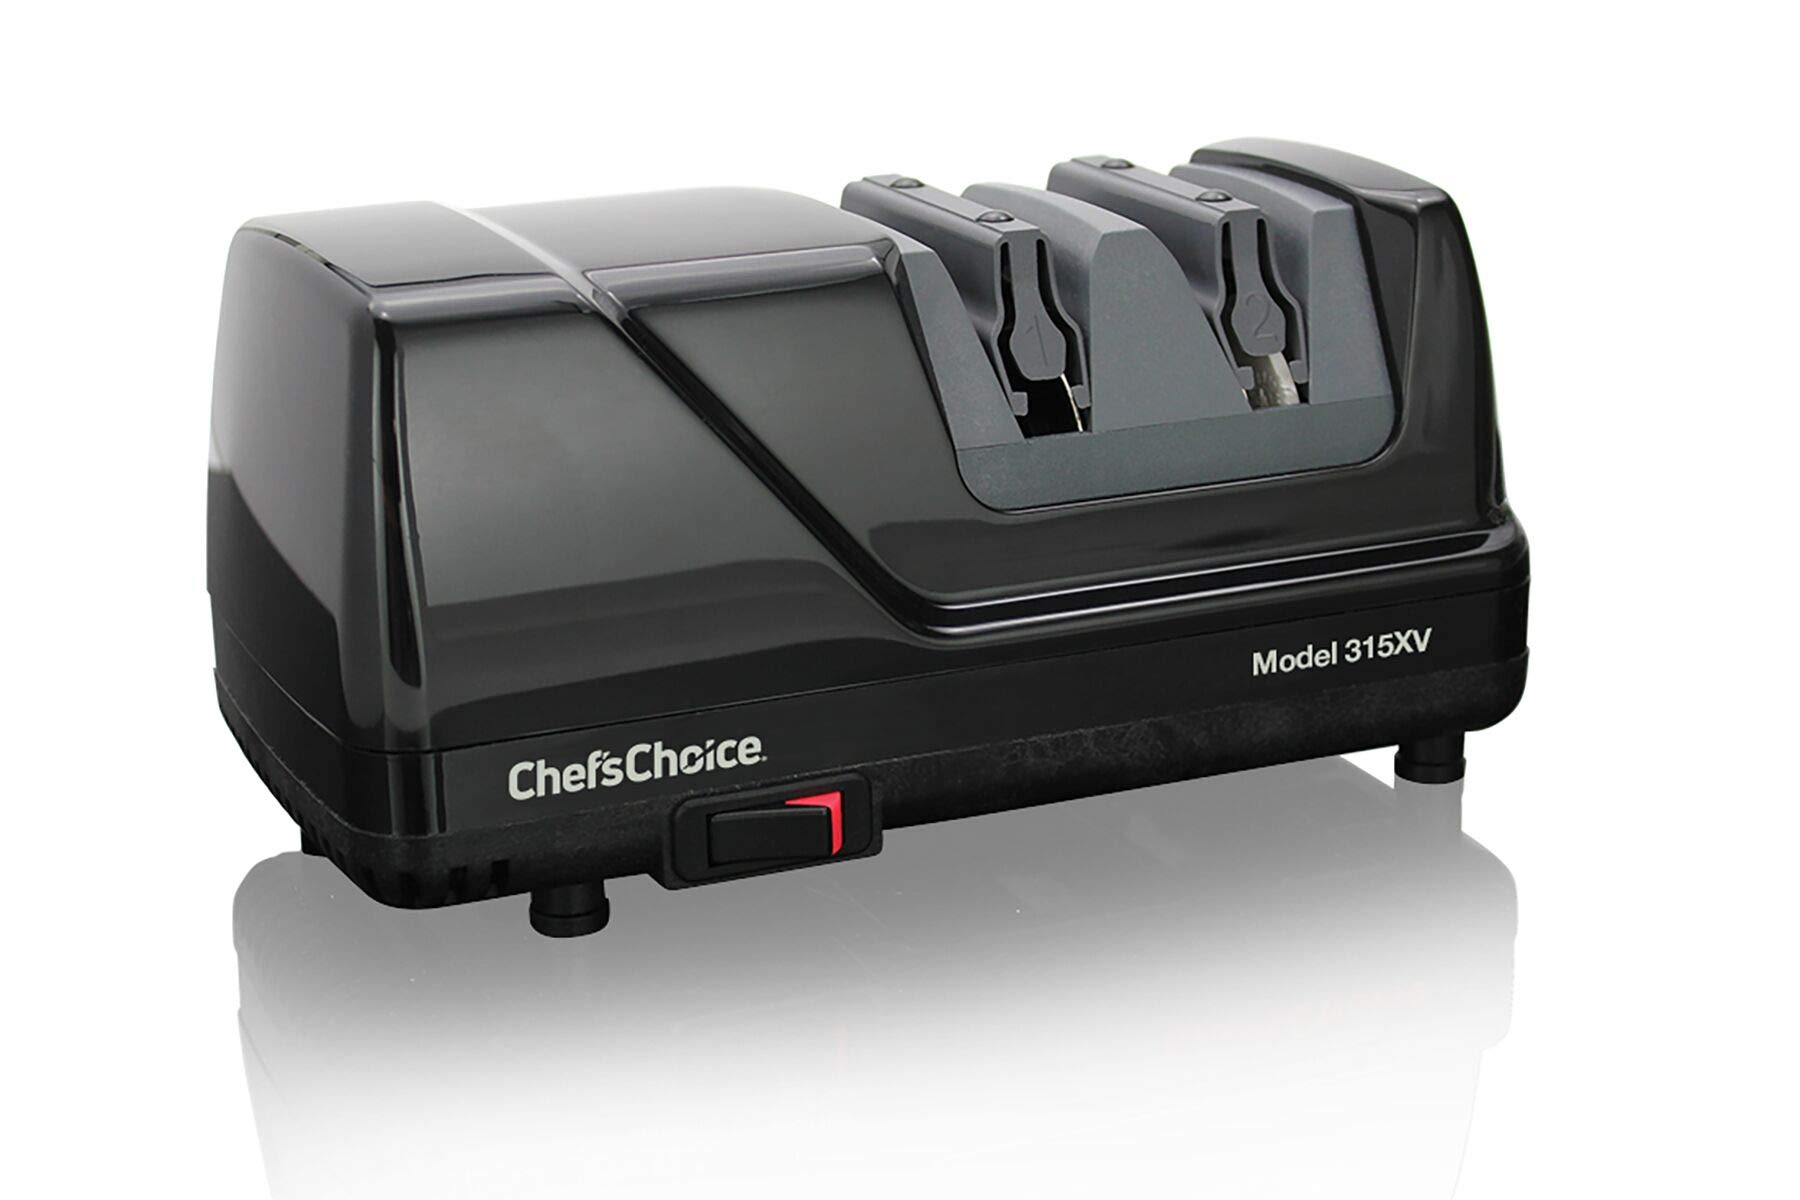 Chef'sChoice 315 XV Versatile Professional Diamond Hone Electric Knife Sharpener for Straight edge or Serrated knives 15 and 20 Degree Class, 2-Stage, Black